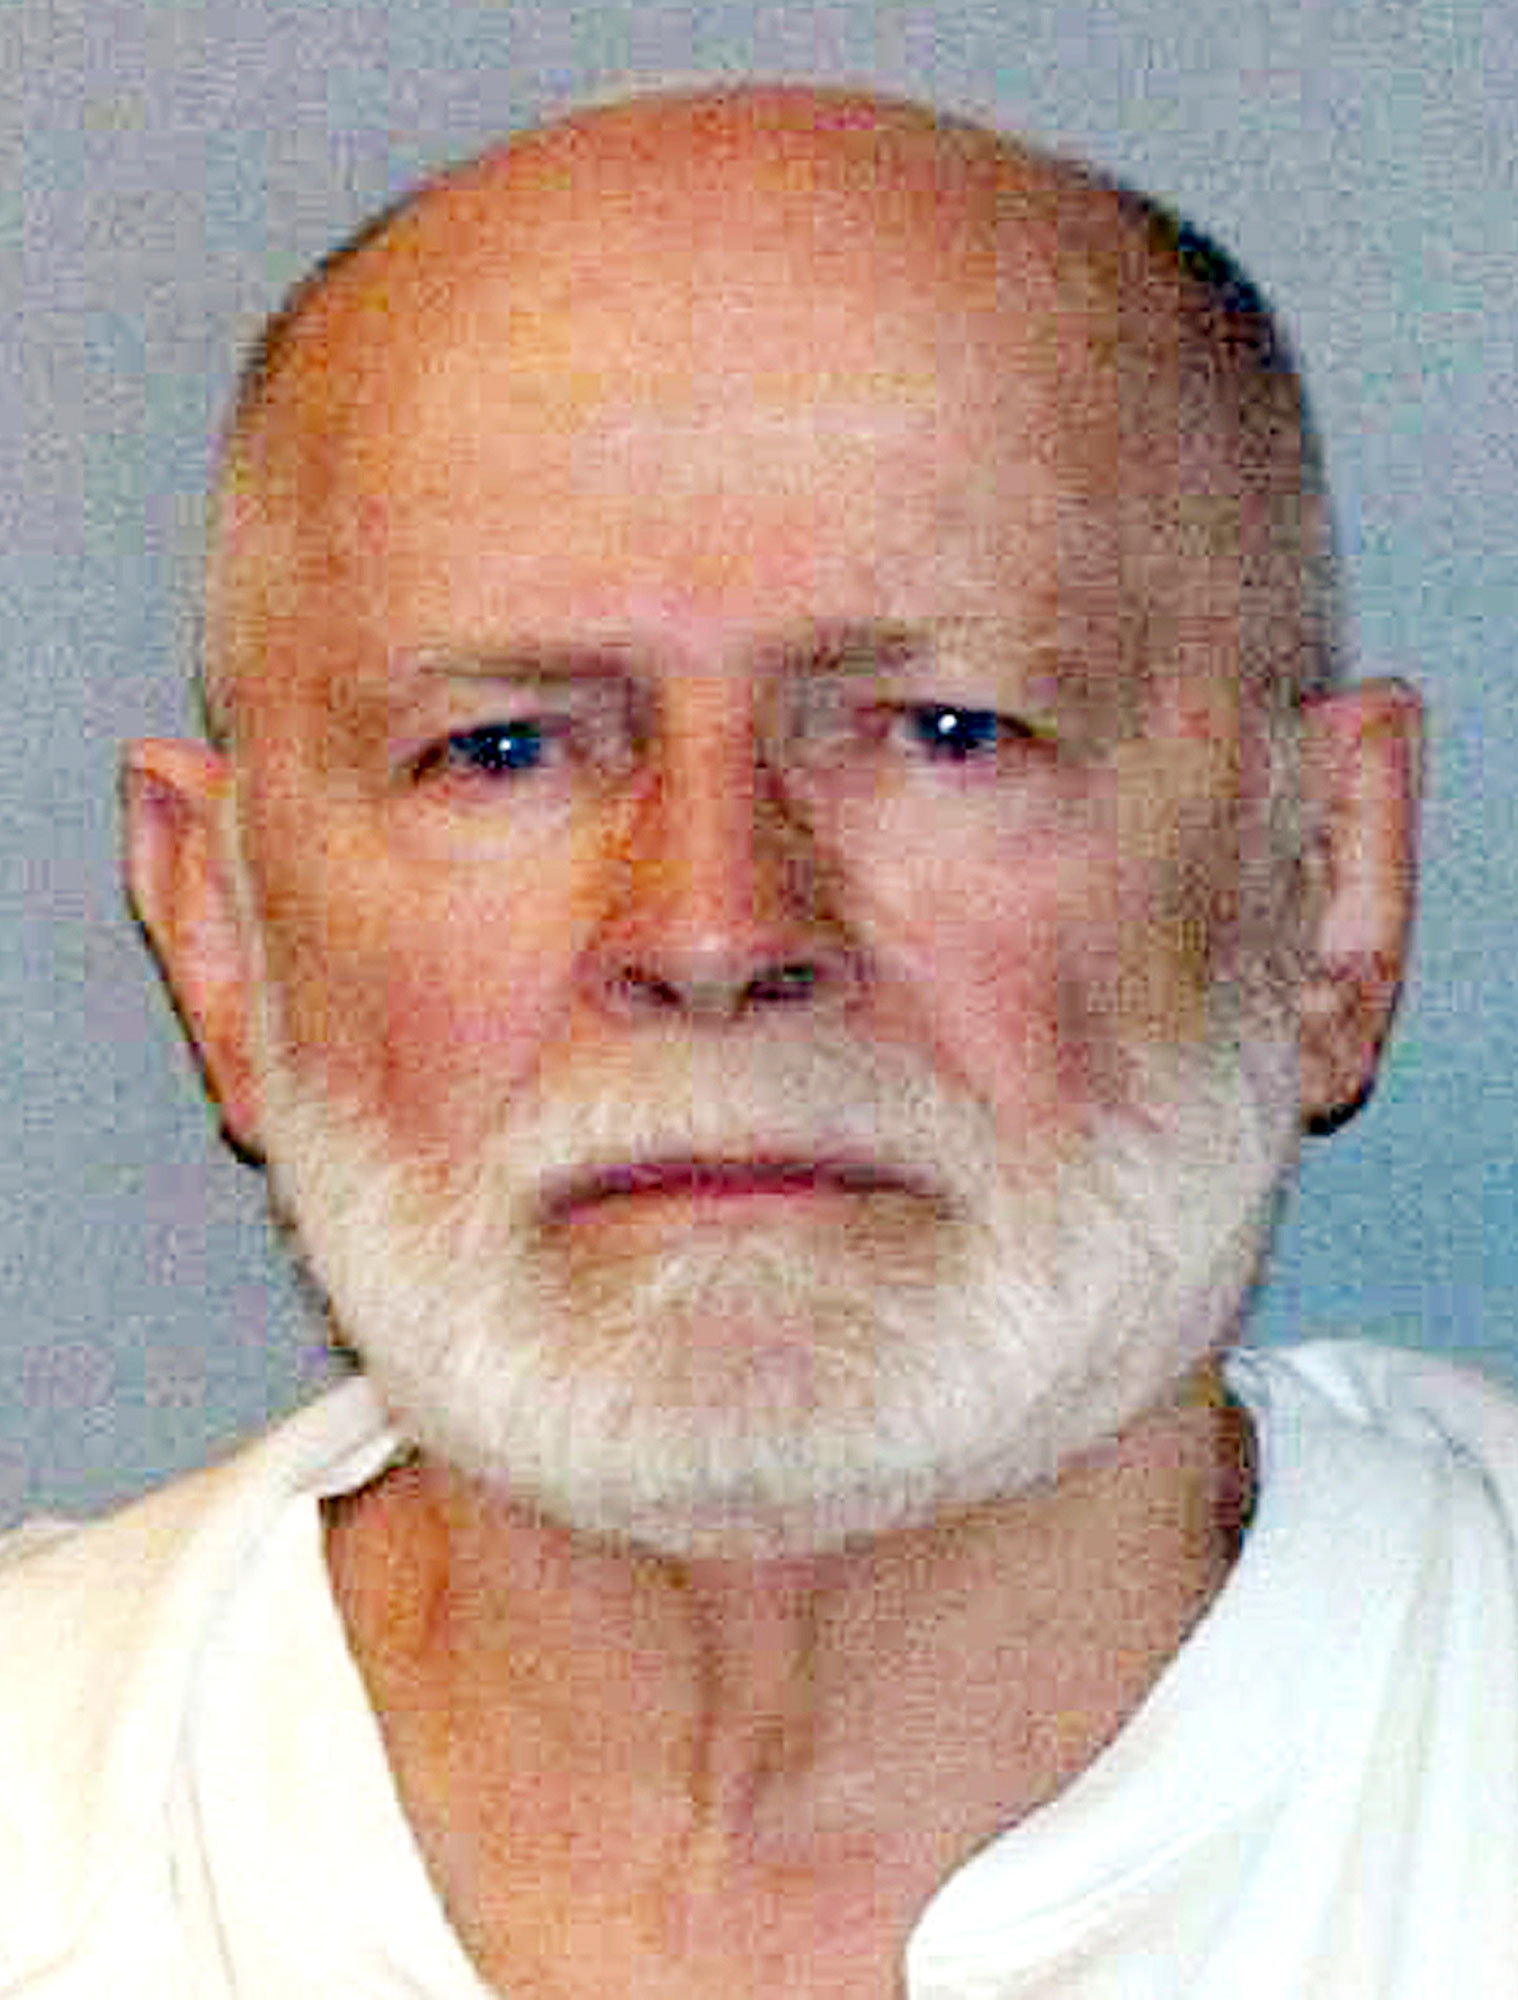 <div class='meta'><div class='origin-logo' data-origin='none'></div><span class='caption-text' data-credit='U.S. Marshals Service via AP'>Boston gangster James &#34;Whitey&#34; Bulger, one of the FBI's most wanted criminals for 16 years until his 2011 arrest, died at age 89 in prison, the Department of Justice confirmed.</span></div>